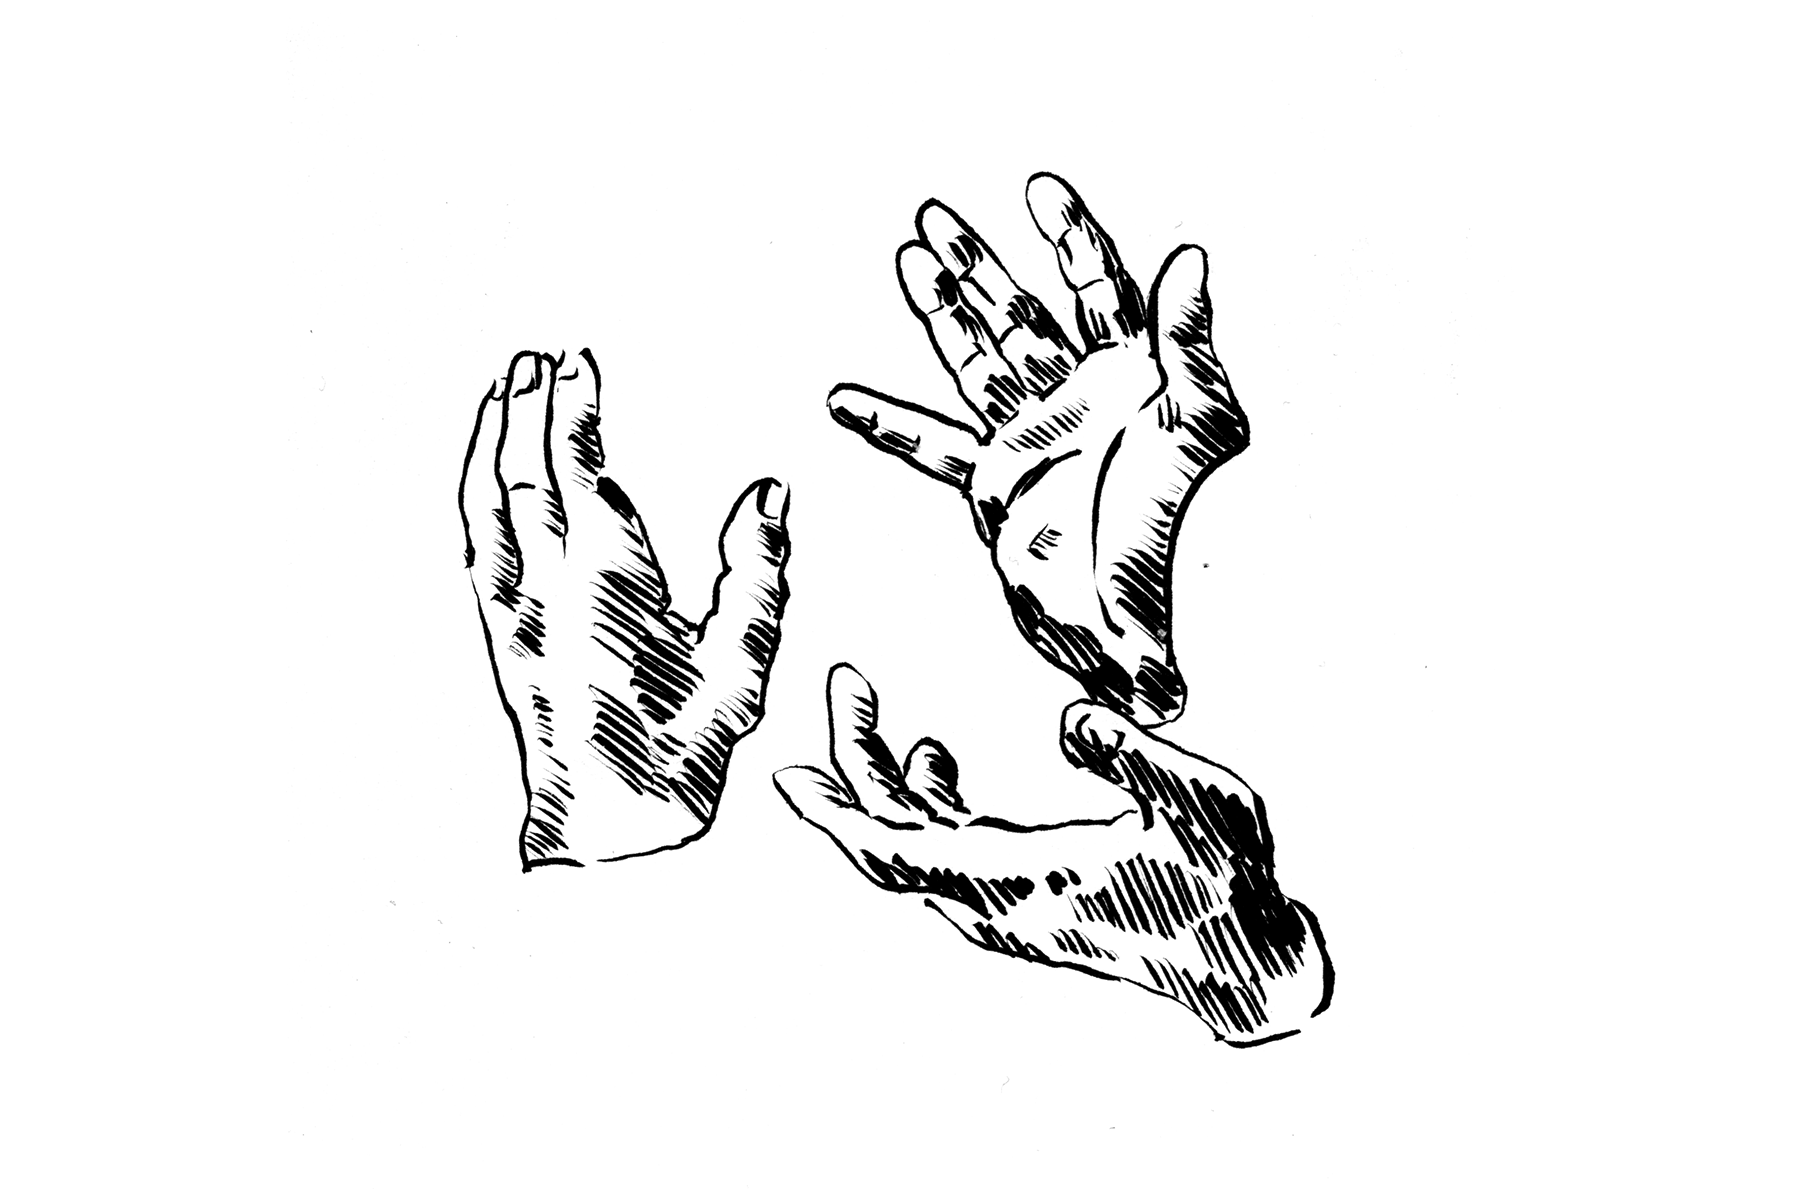 NEWSPAPER_illo3_1800px.png